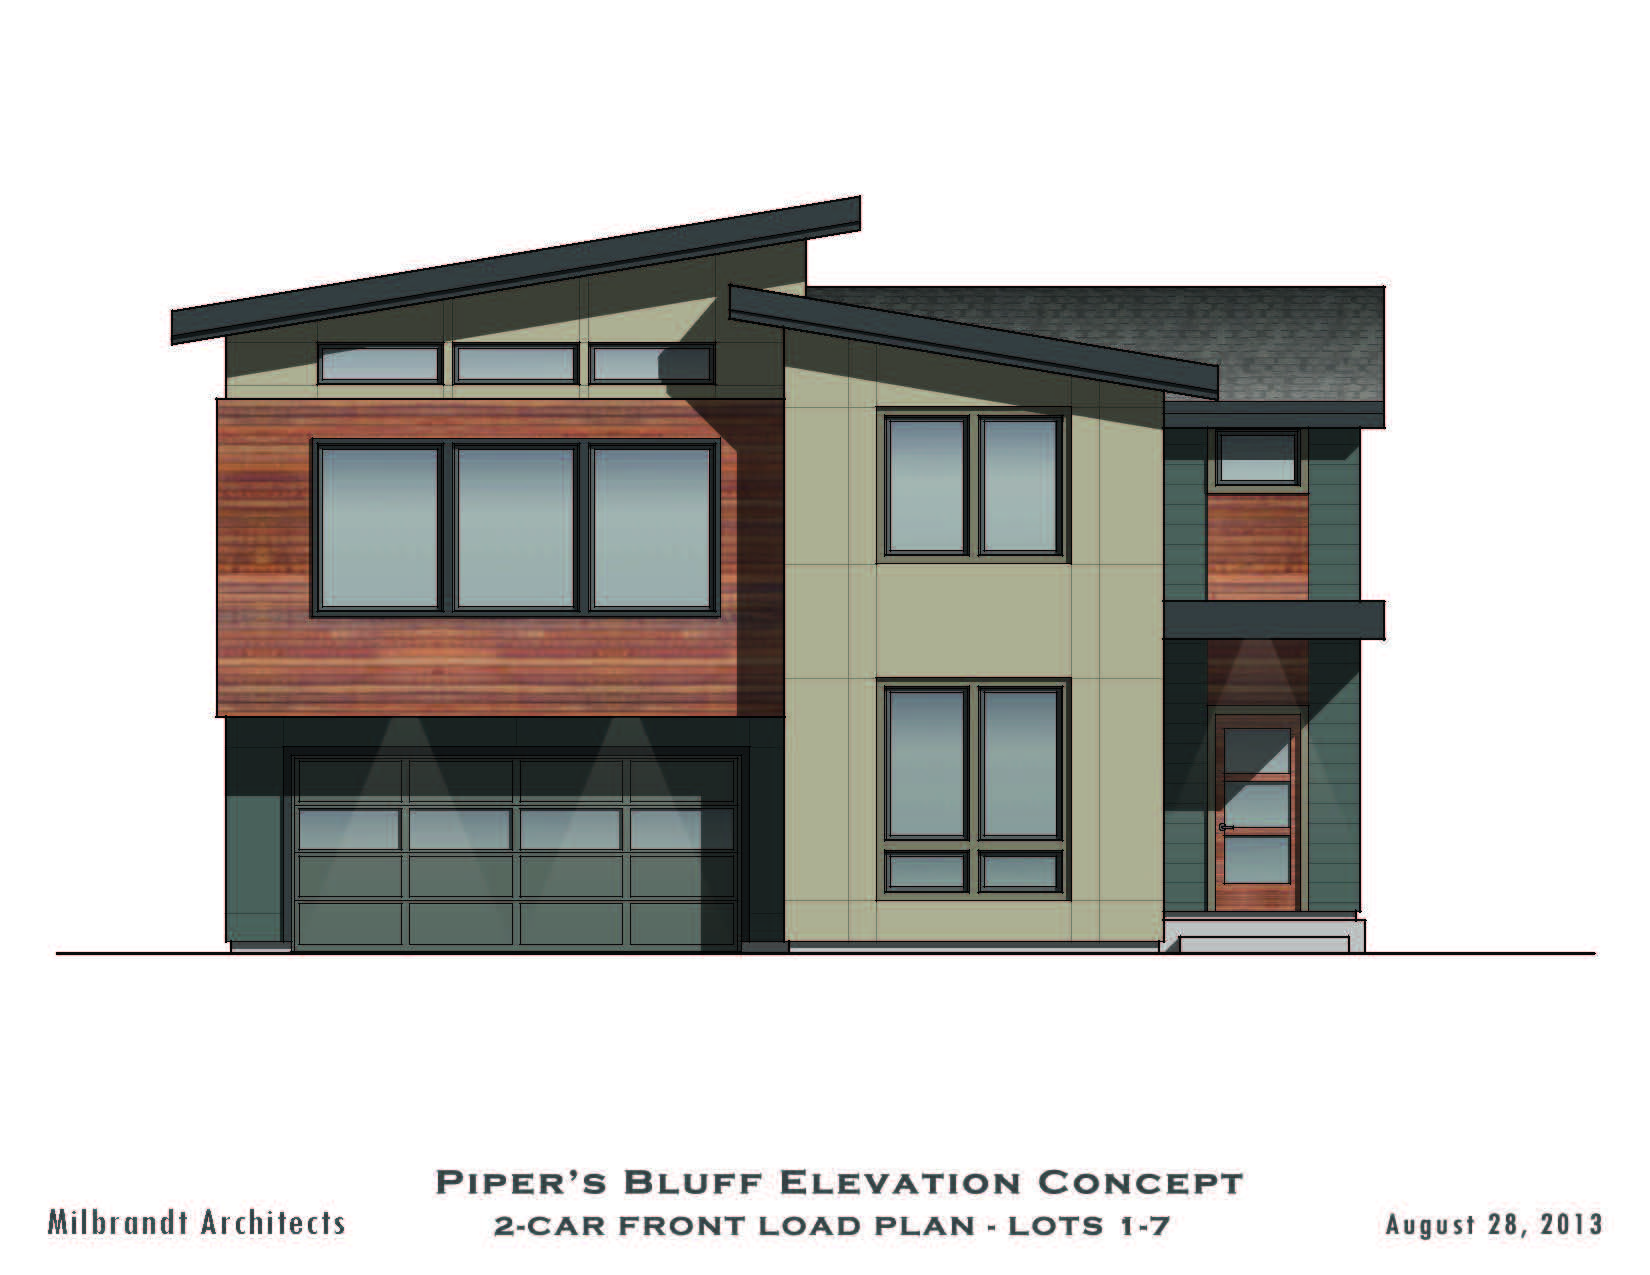 Pipers Bluff Block 1 2-Car Front Load Plan front 13_0828.jpg